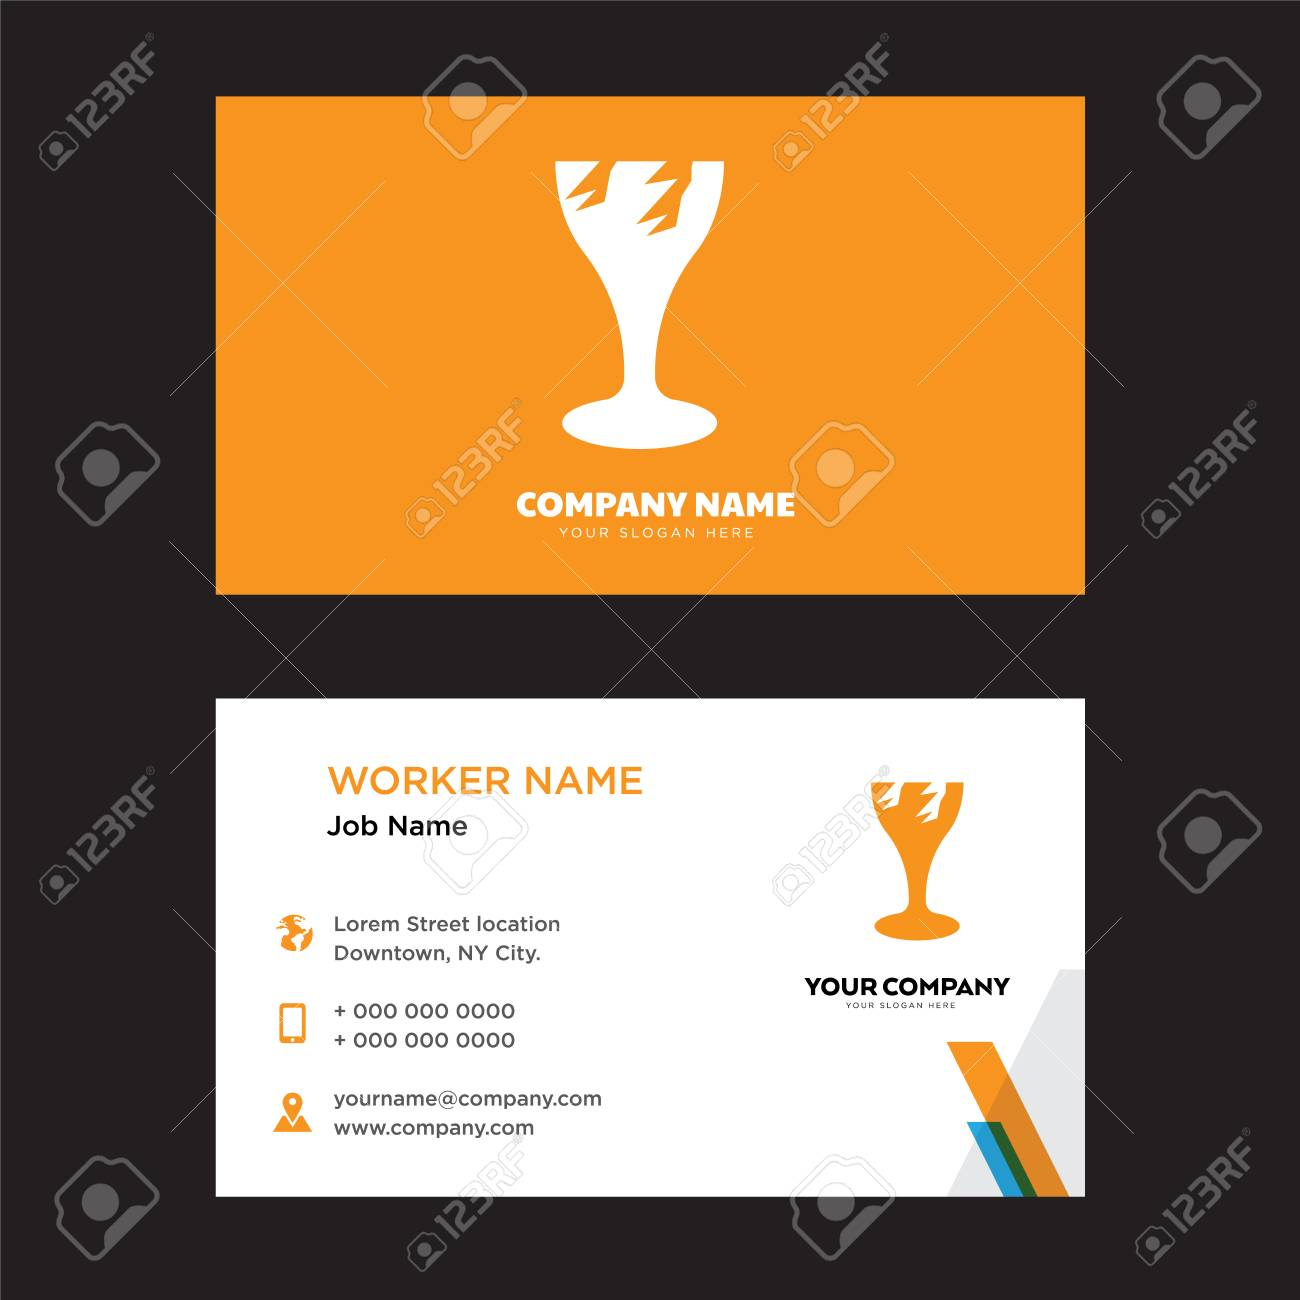 Broken glass business card design template visiting for your broken glass business card design template visiting for your company modern horizontal identity card cheaphphosting Image collections